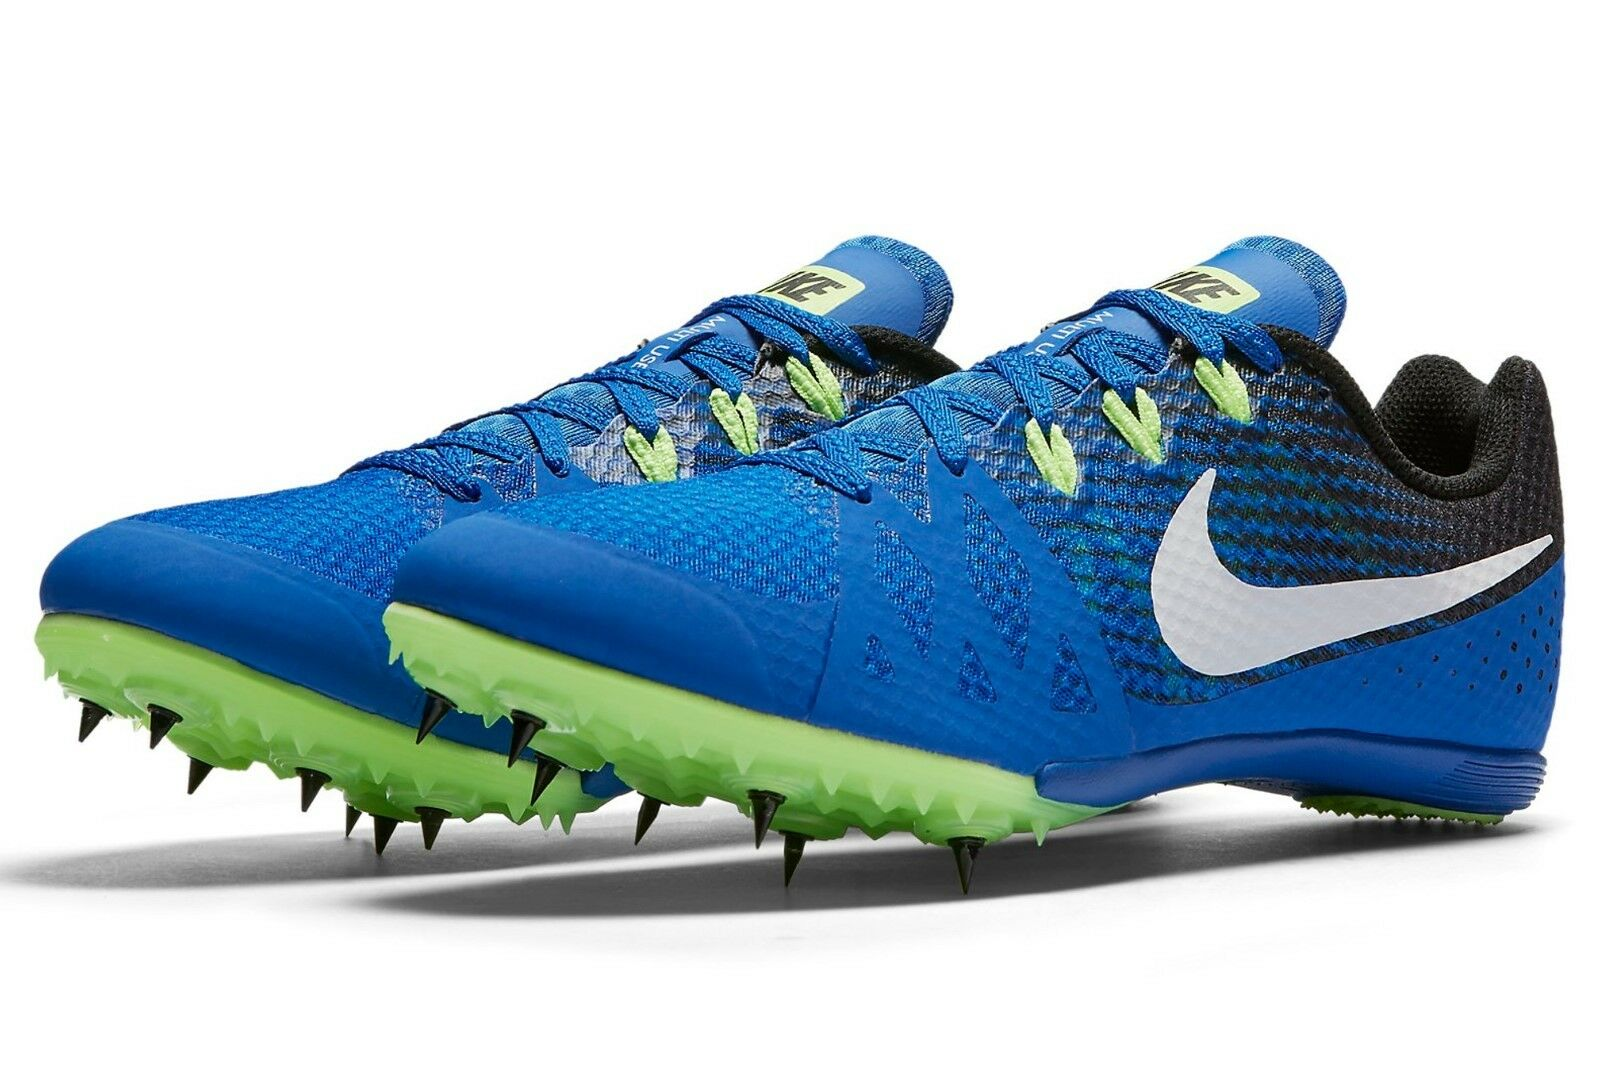 Nike Rival M Track and Field Spikes Men's 12 - new FREE SHIP The most popular shoes for men and women